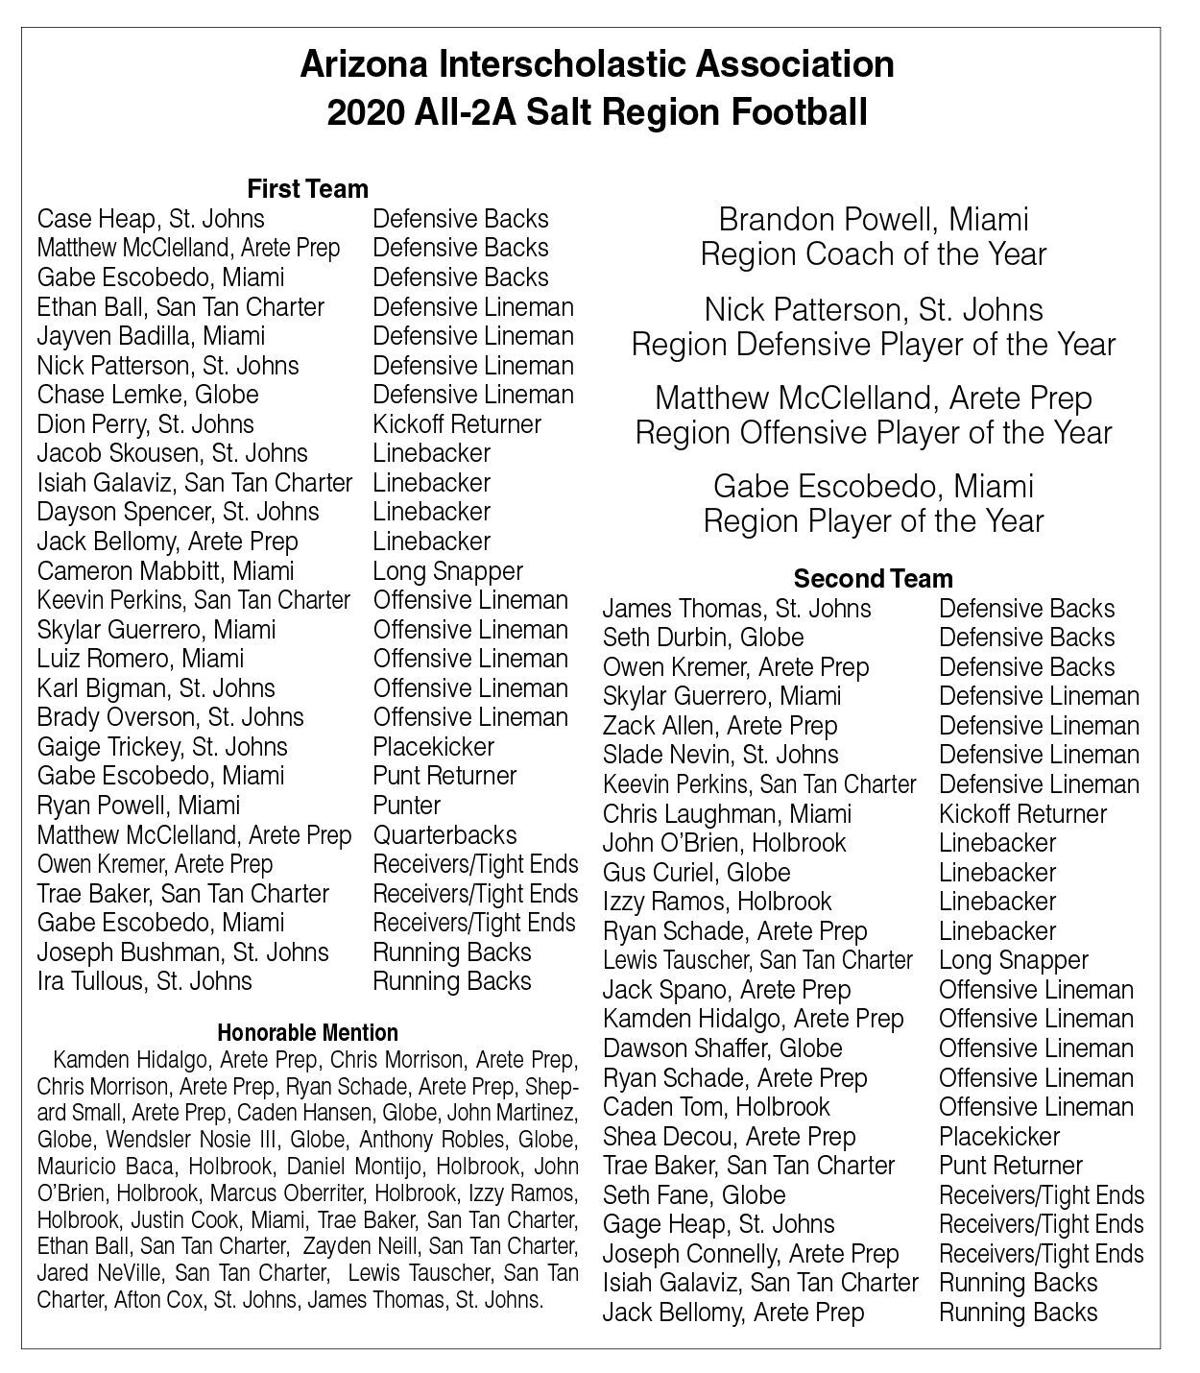 AIA 2020 All-2A Salt Region Football teams